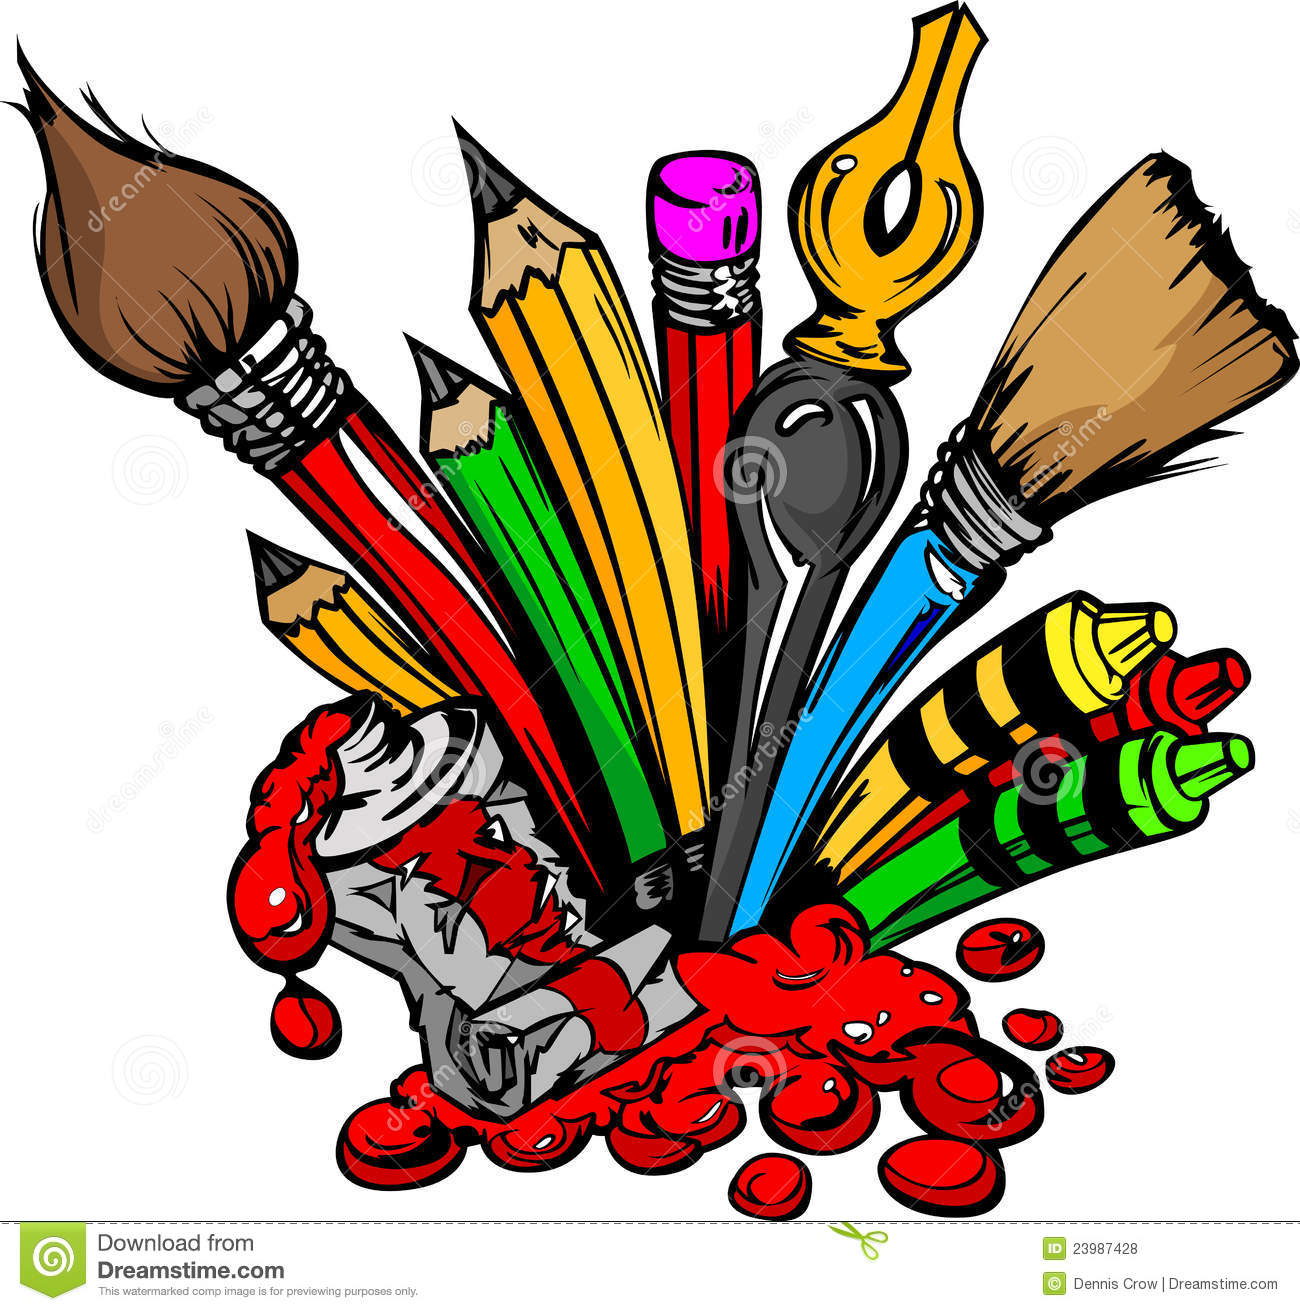 Art and back to school supplies paint brushes pencils oil paint